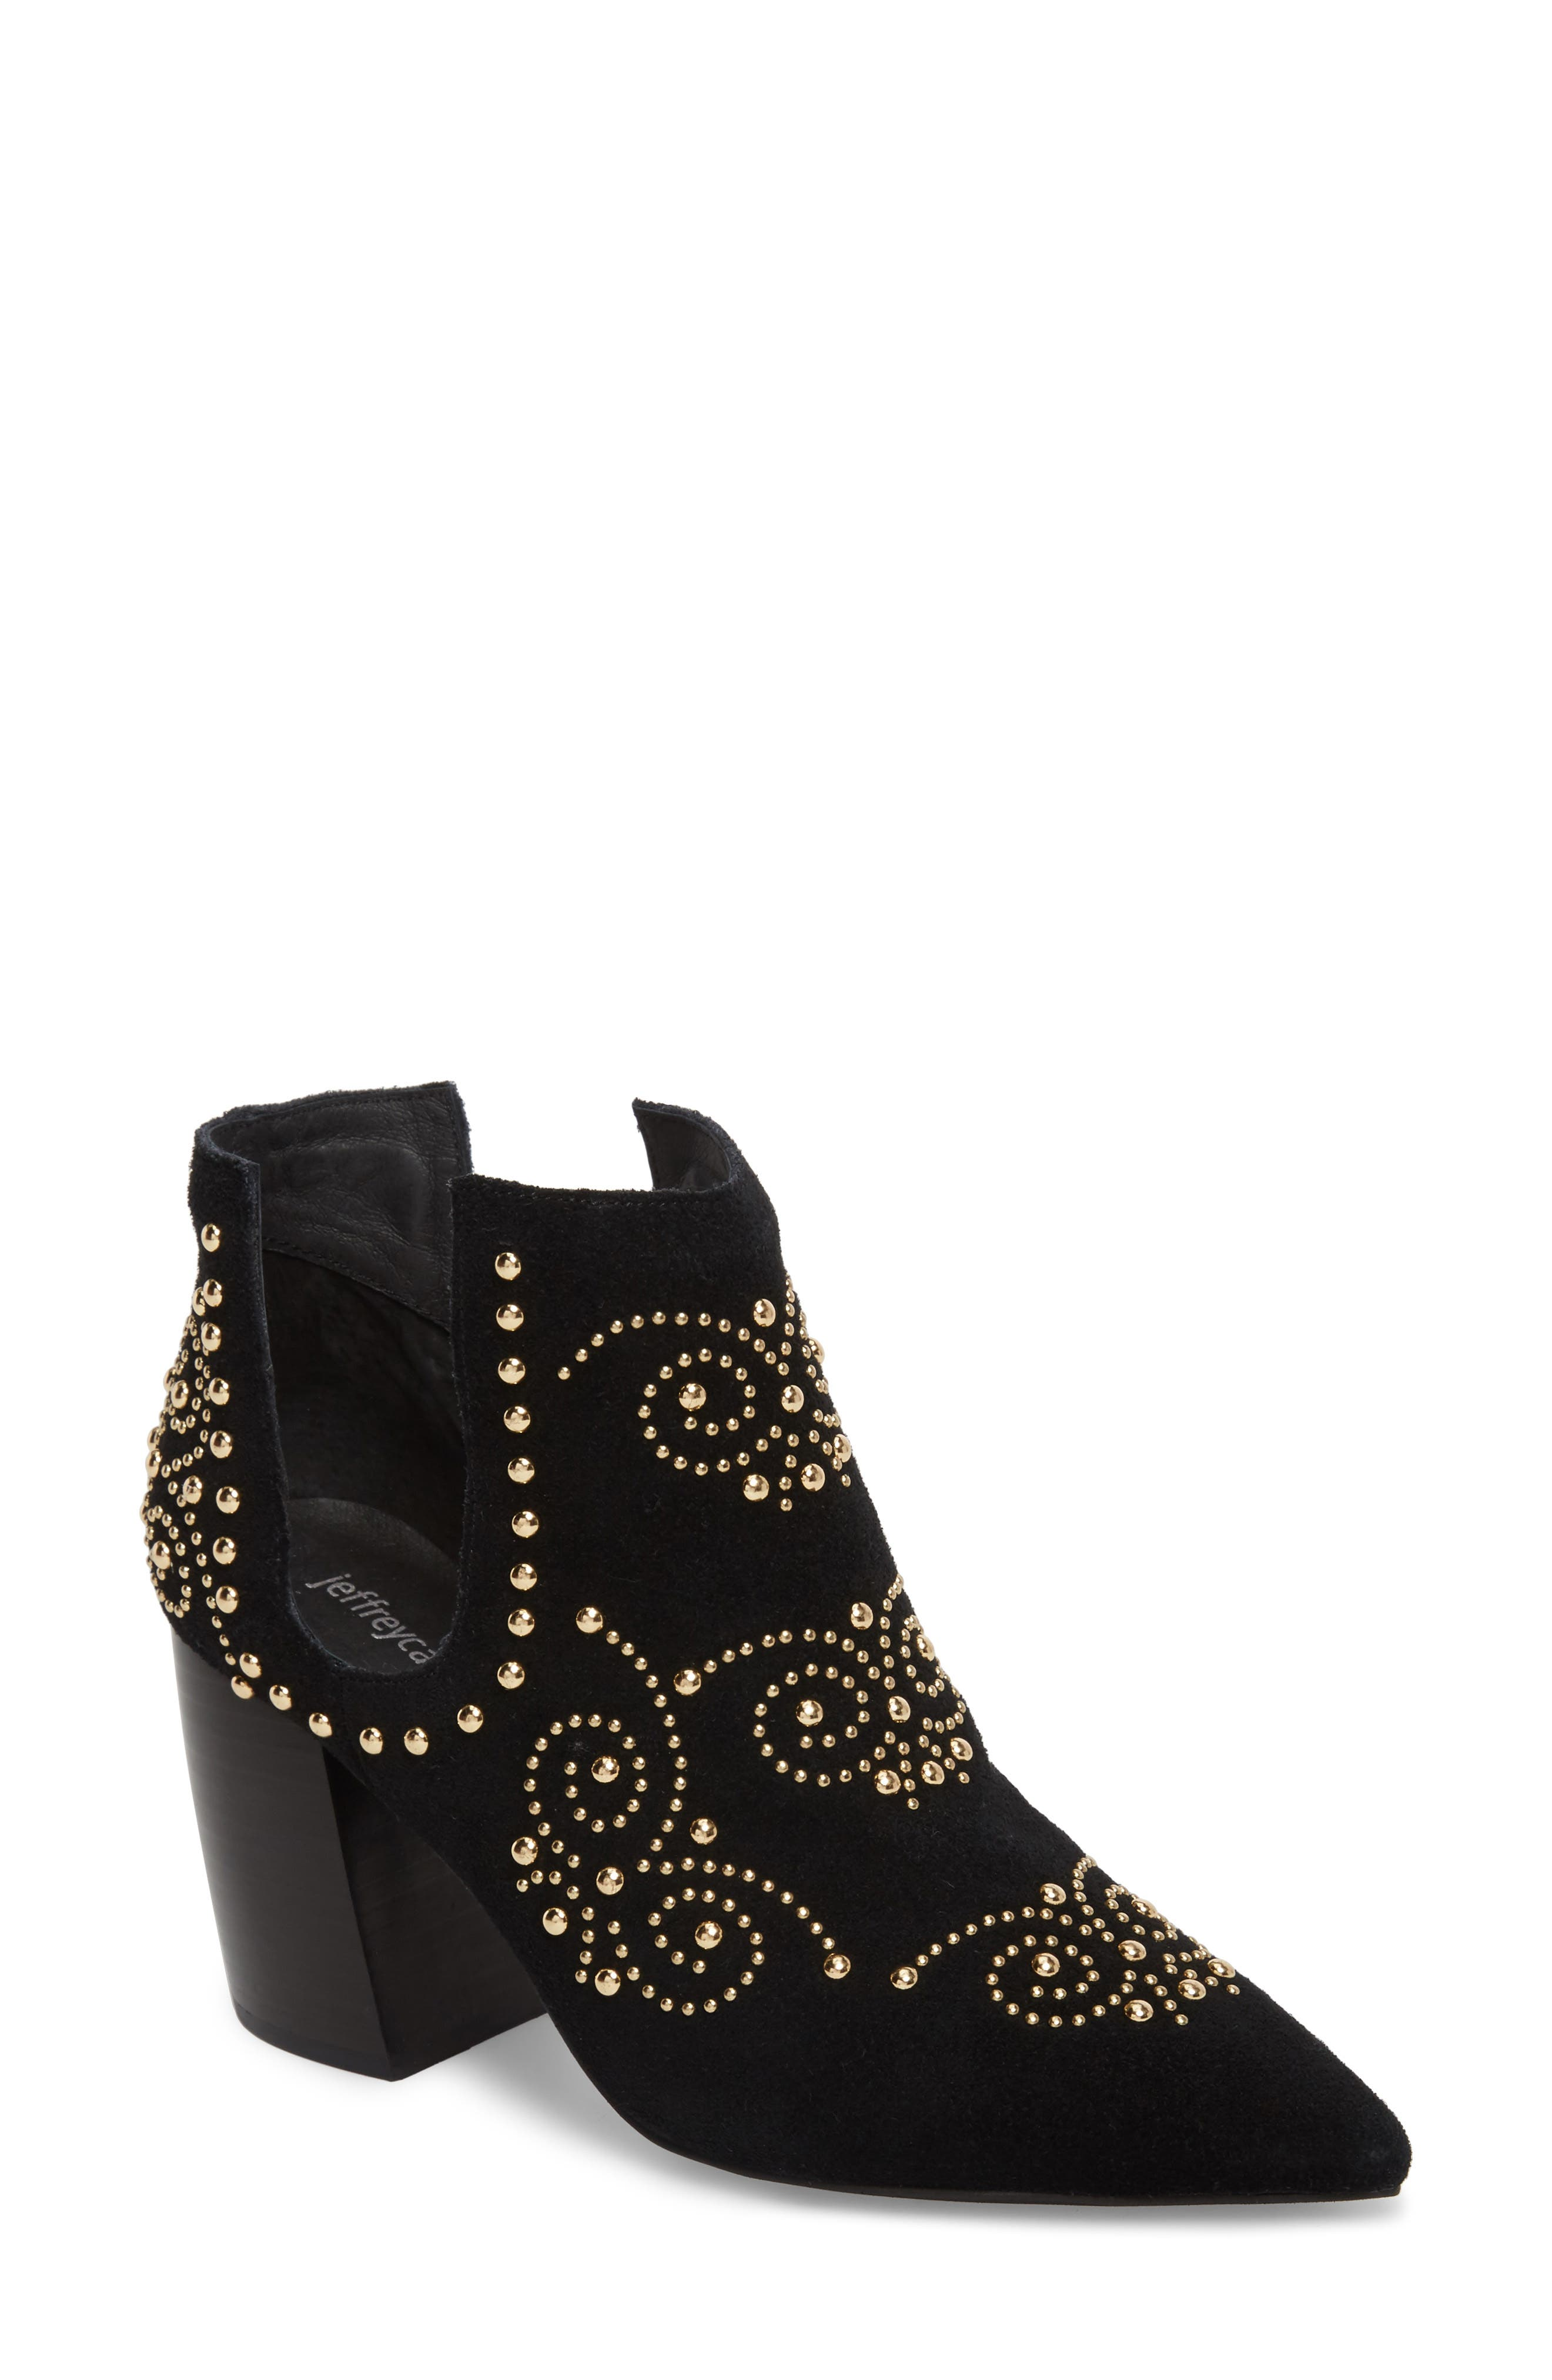 Alternate Image 1 Selected - Jeffrey Campbell Ornella Studded Bootie (Women)